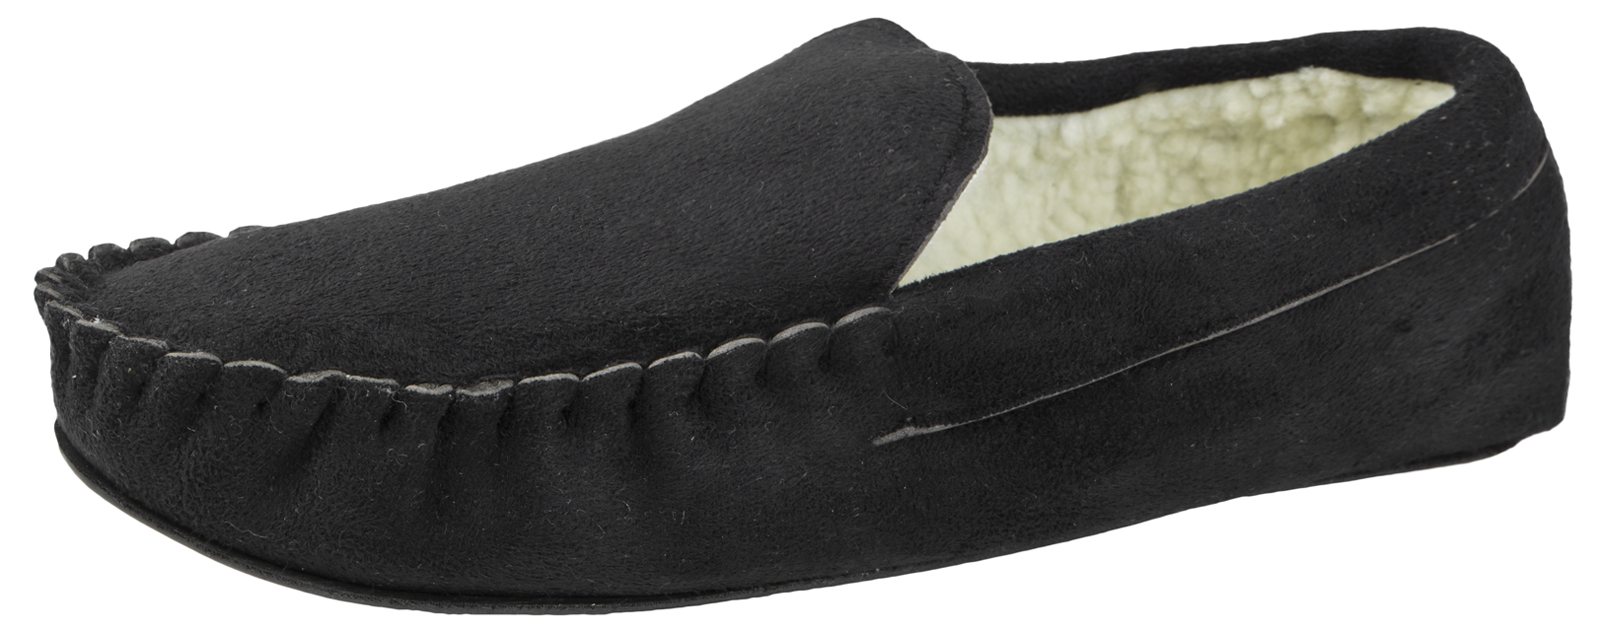 Mens Moccasins Slippers Warm Winter Faux Fur Fleece Lined Comfort Shoes Size